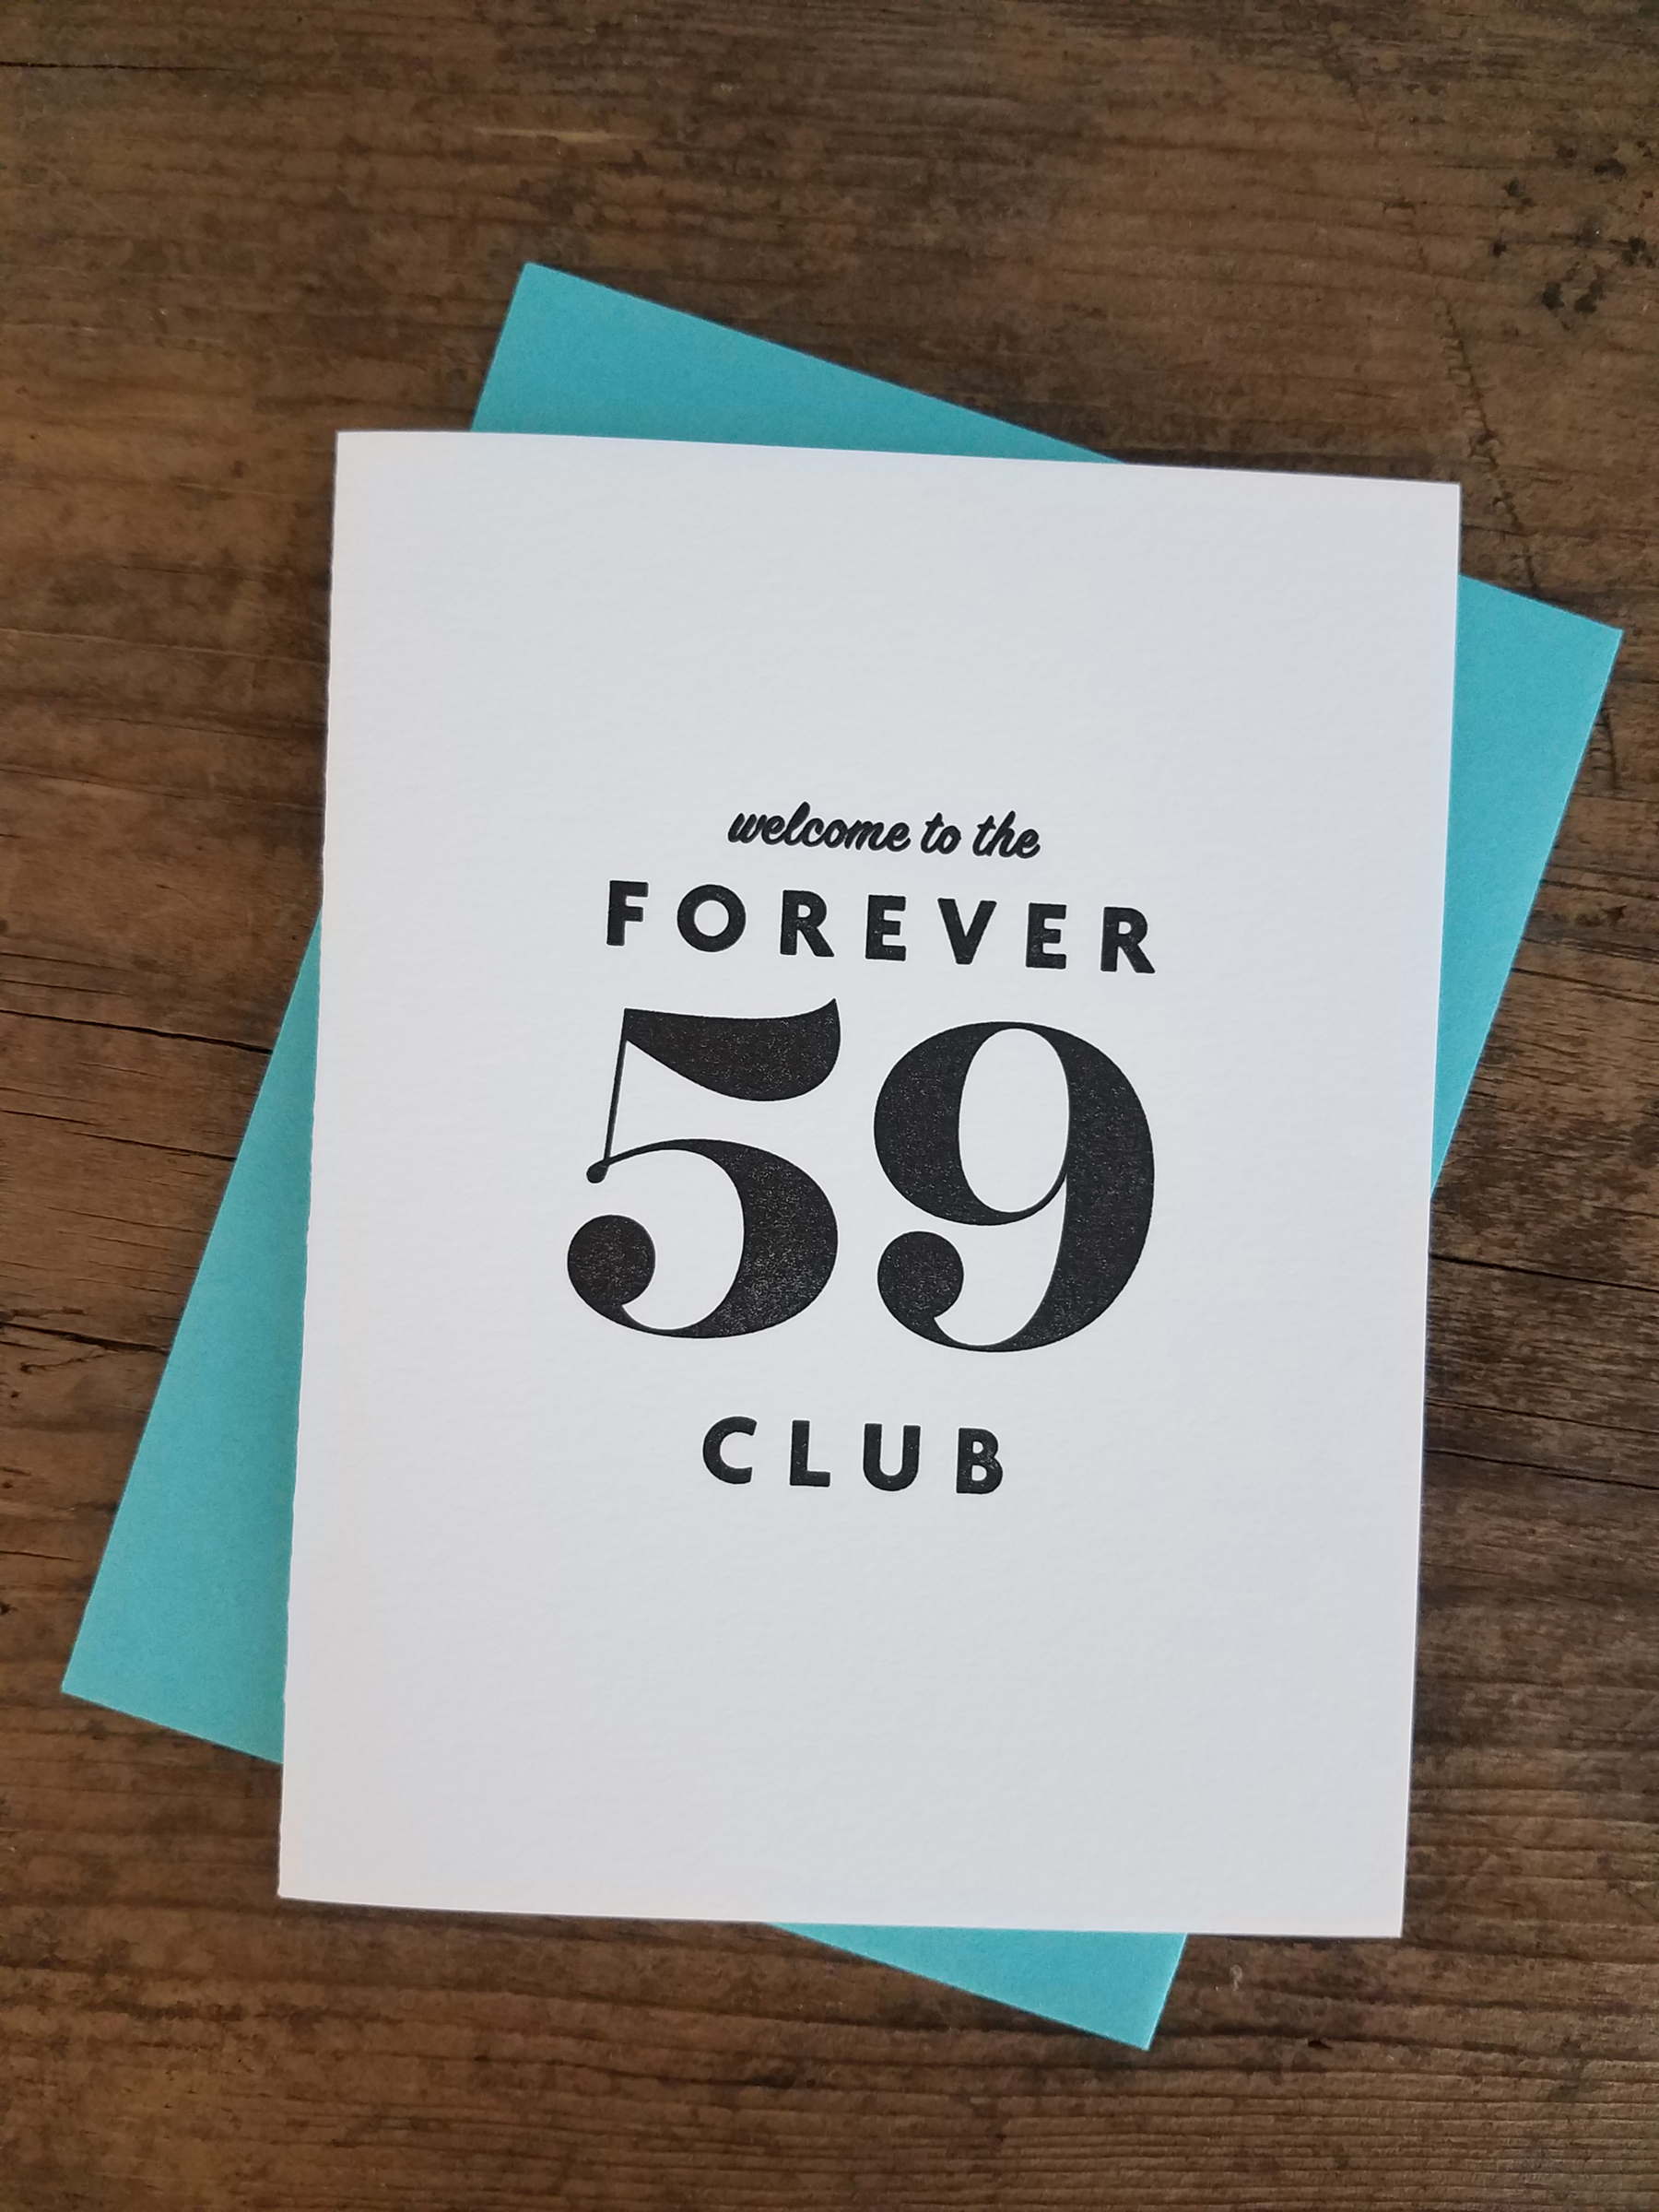 Welcome To The Forever 59 Club